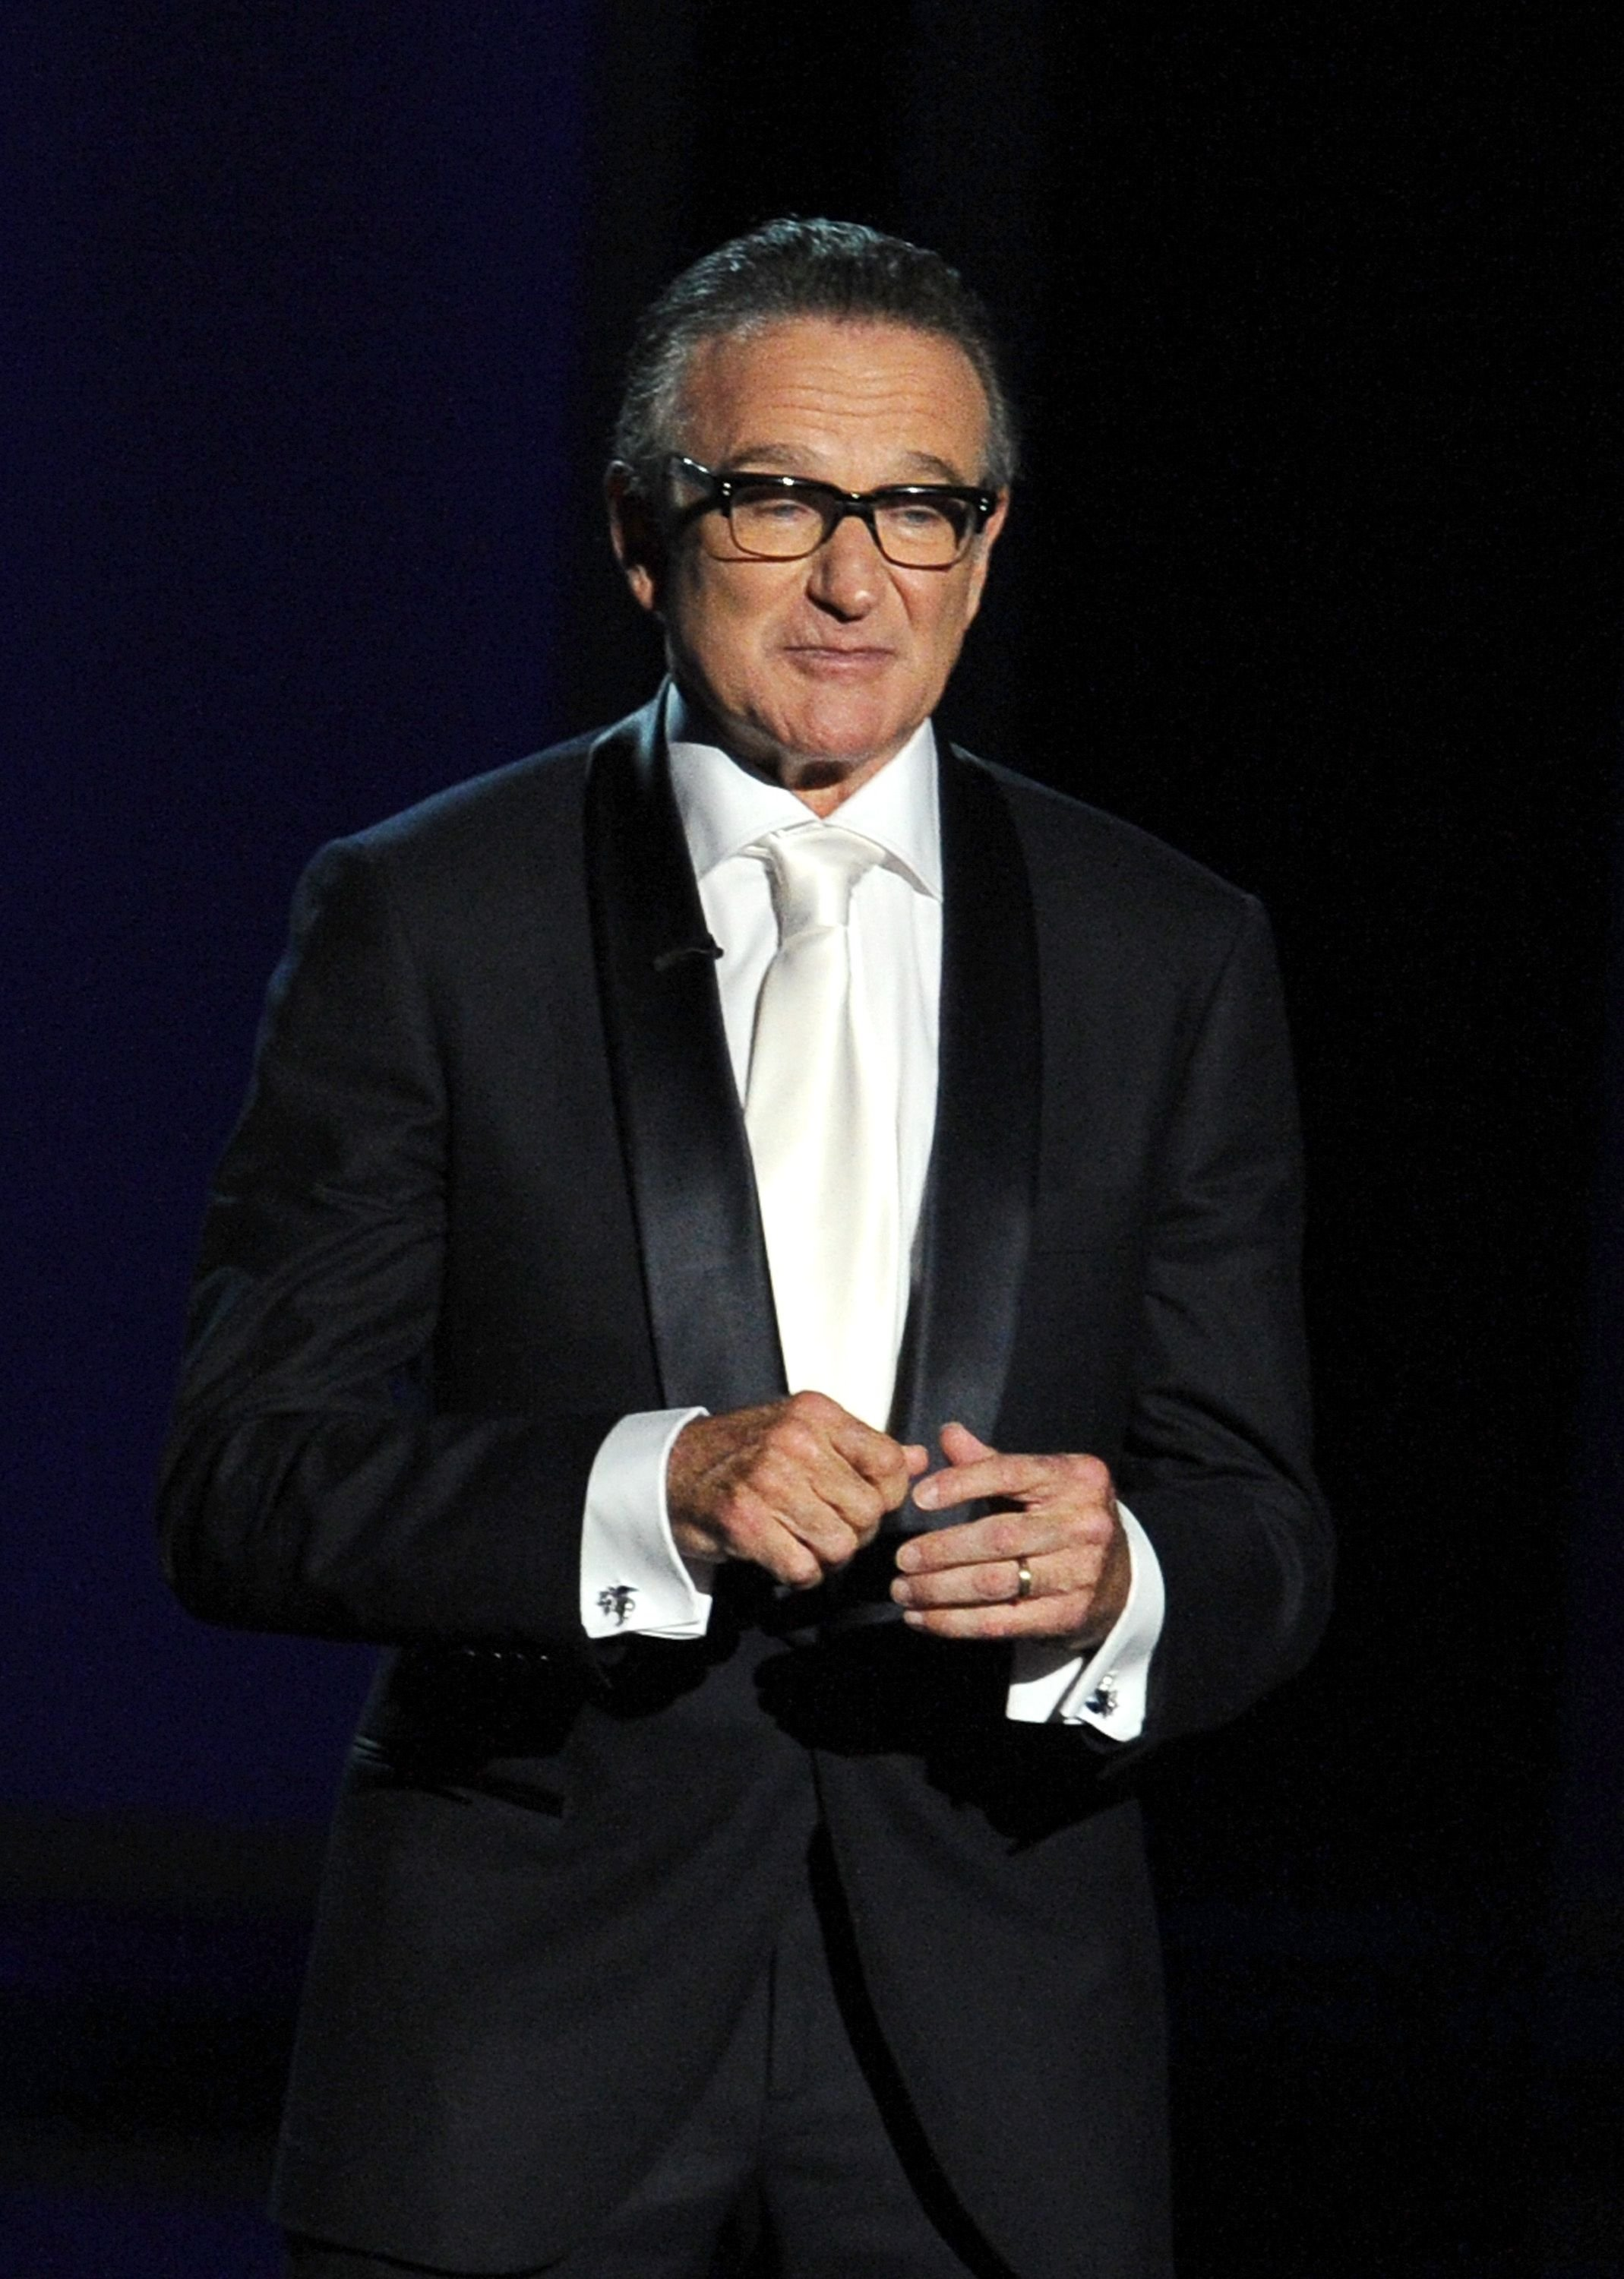 Robin Williams spoke at the 65th Annual Primetime Emmy Awards held at Nokia Theatre L.A. Live on September 22, 2013 | Photo: Getty Images